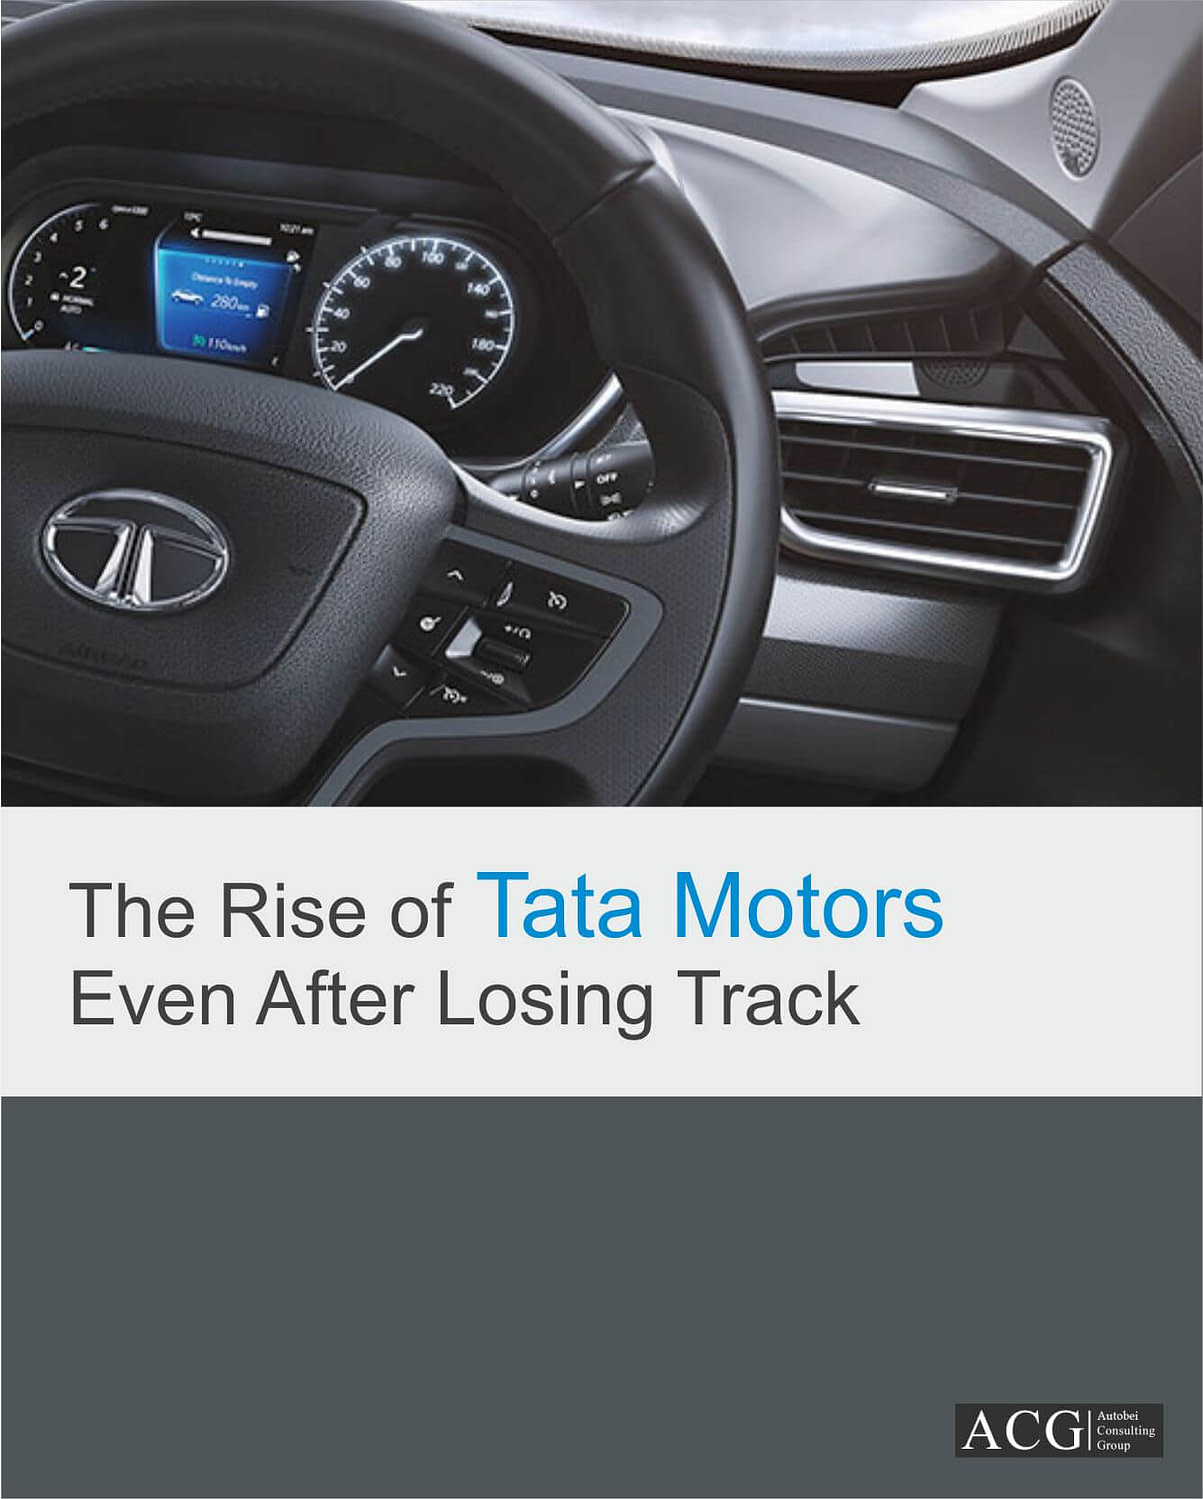 The Rise of Tata Motors Even After Losing Track